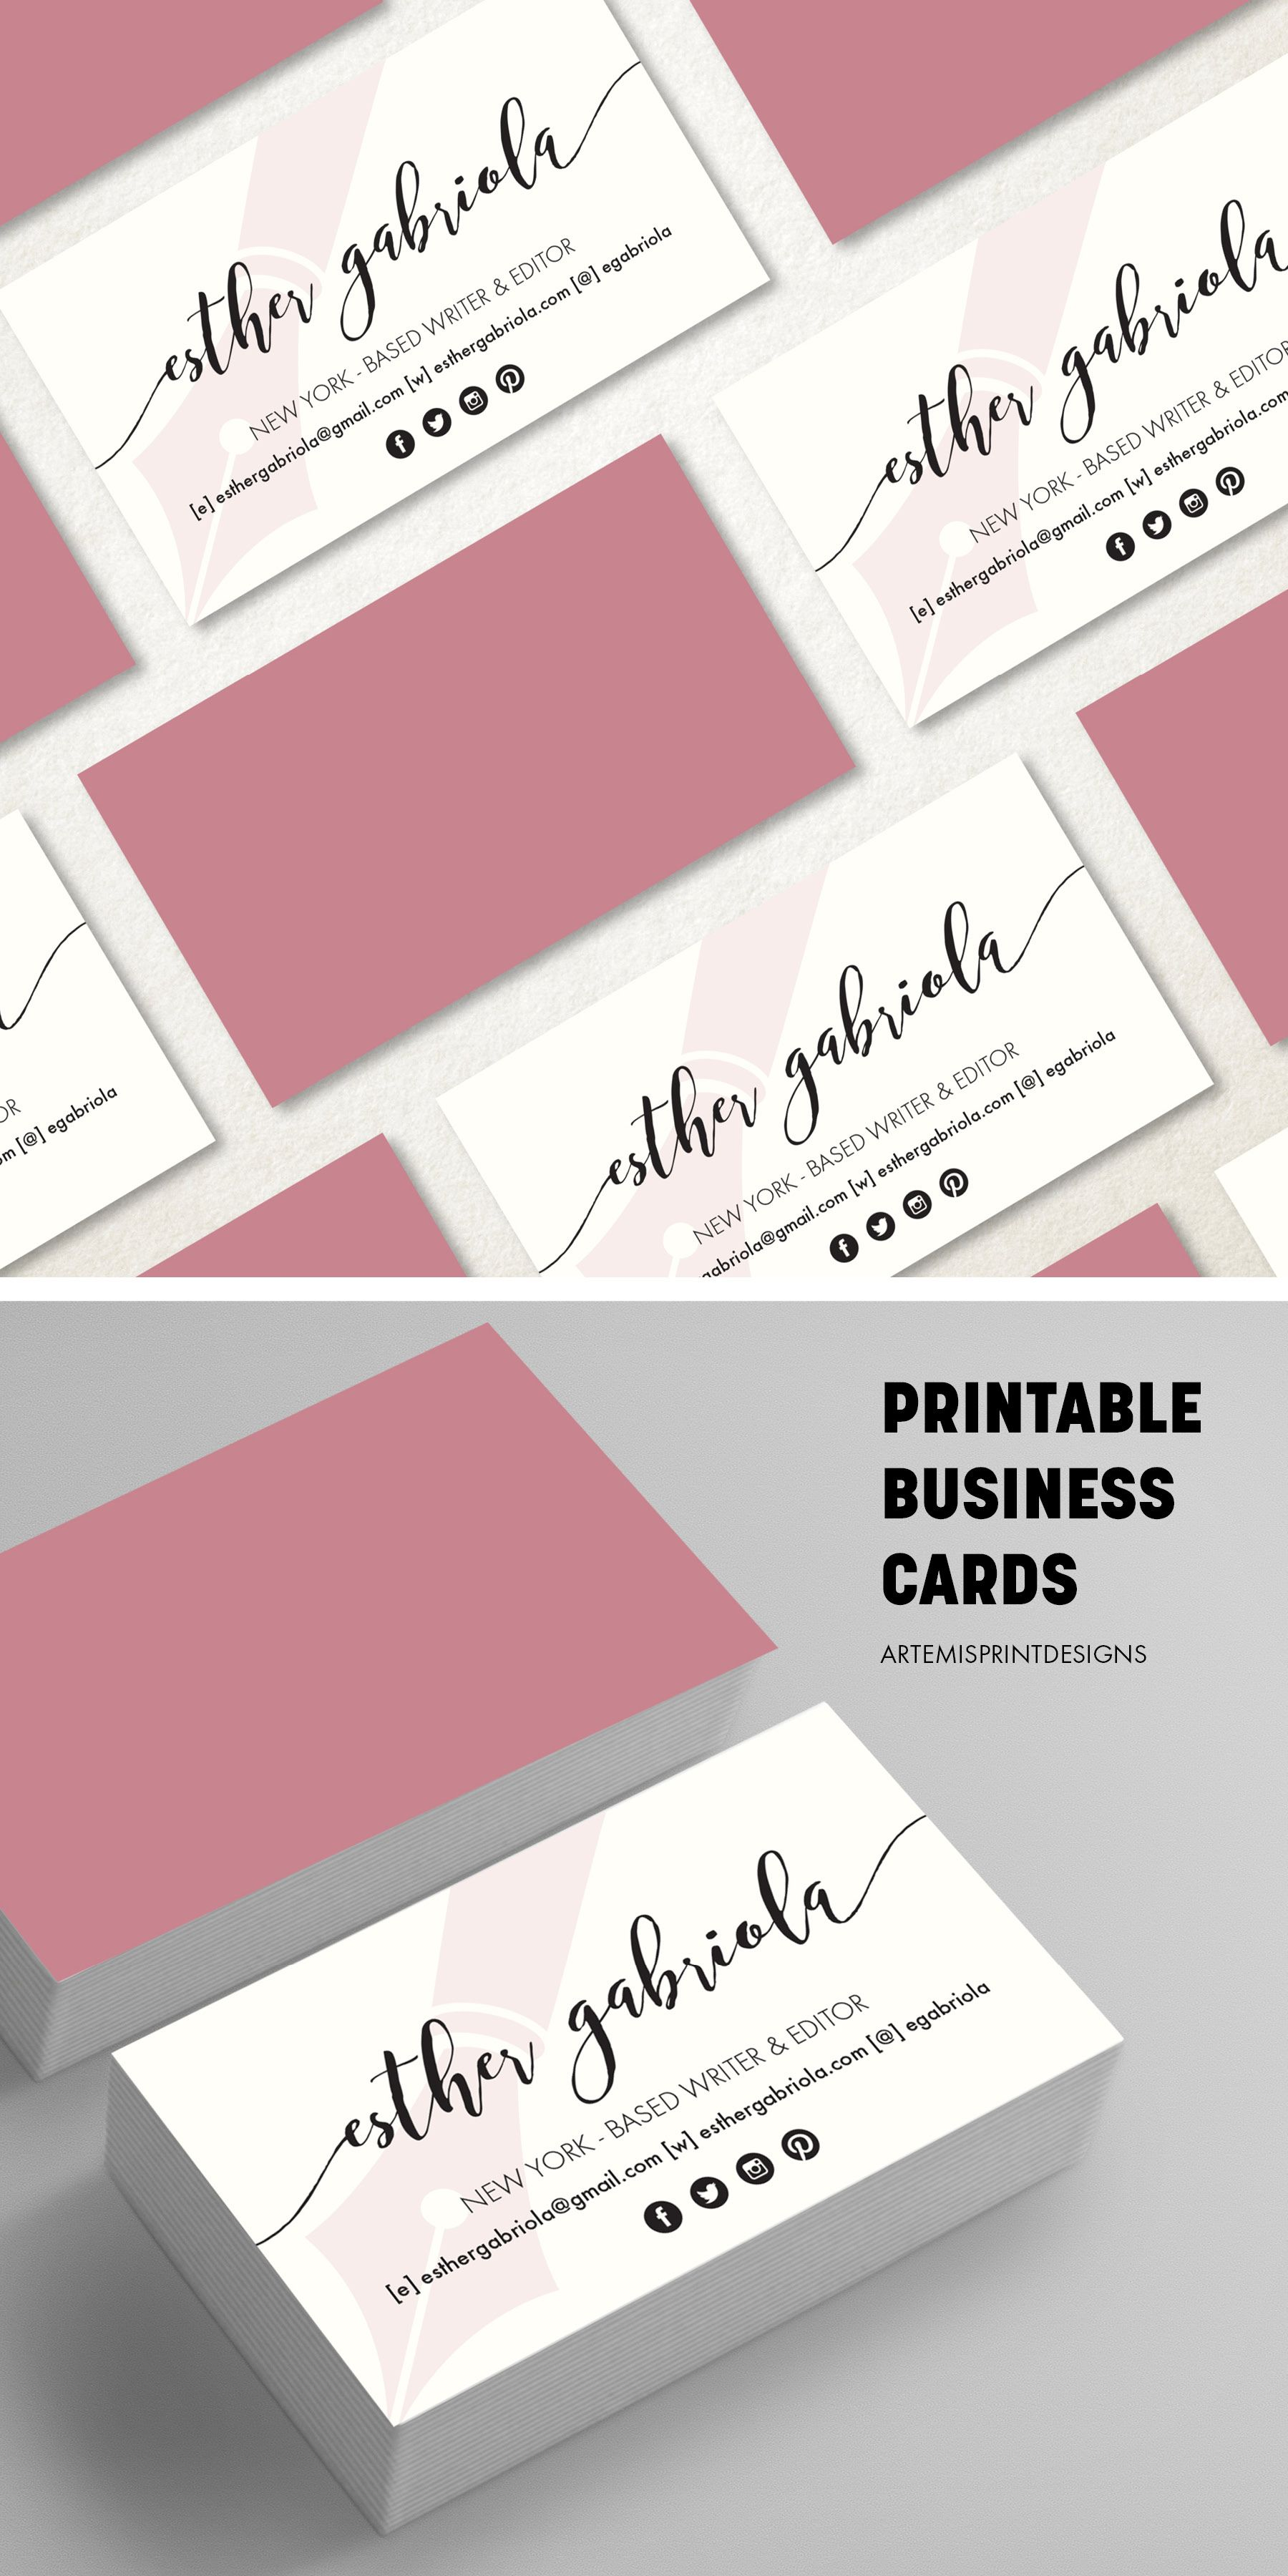 Pink Business Card Printable Classy Business Cards Printable Business Cards Pink Business Card